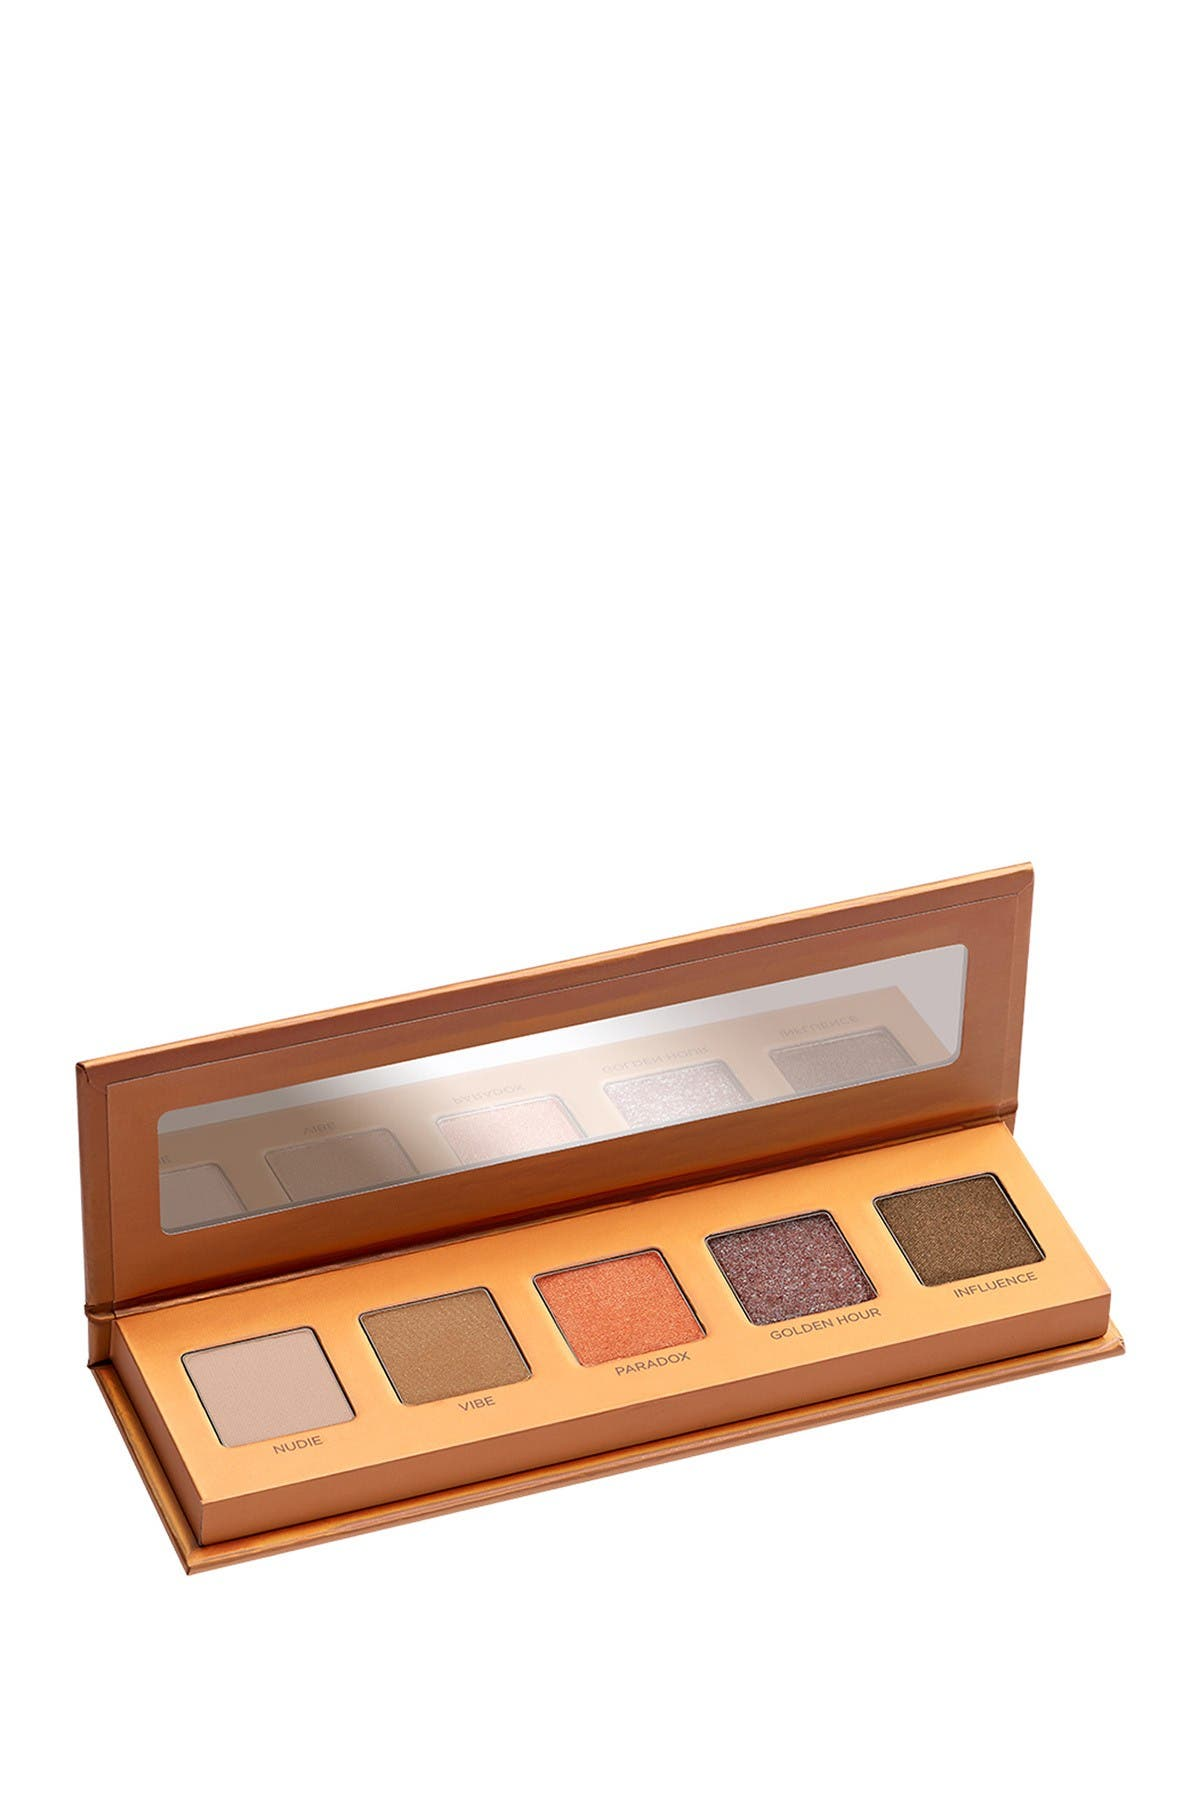 Image of Urban Decay Light Beam 5-Color Eyeshadow Palette